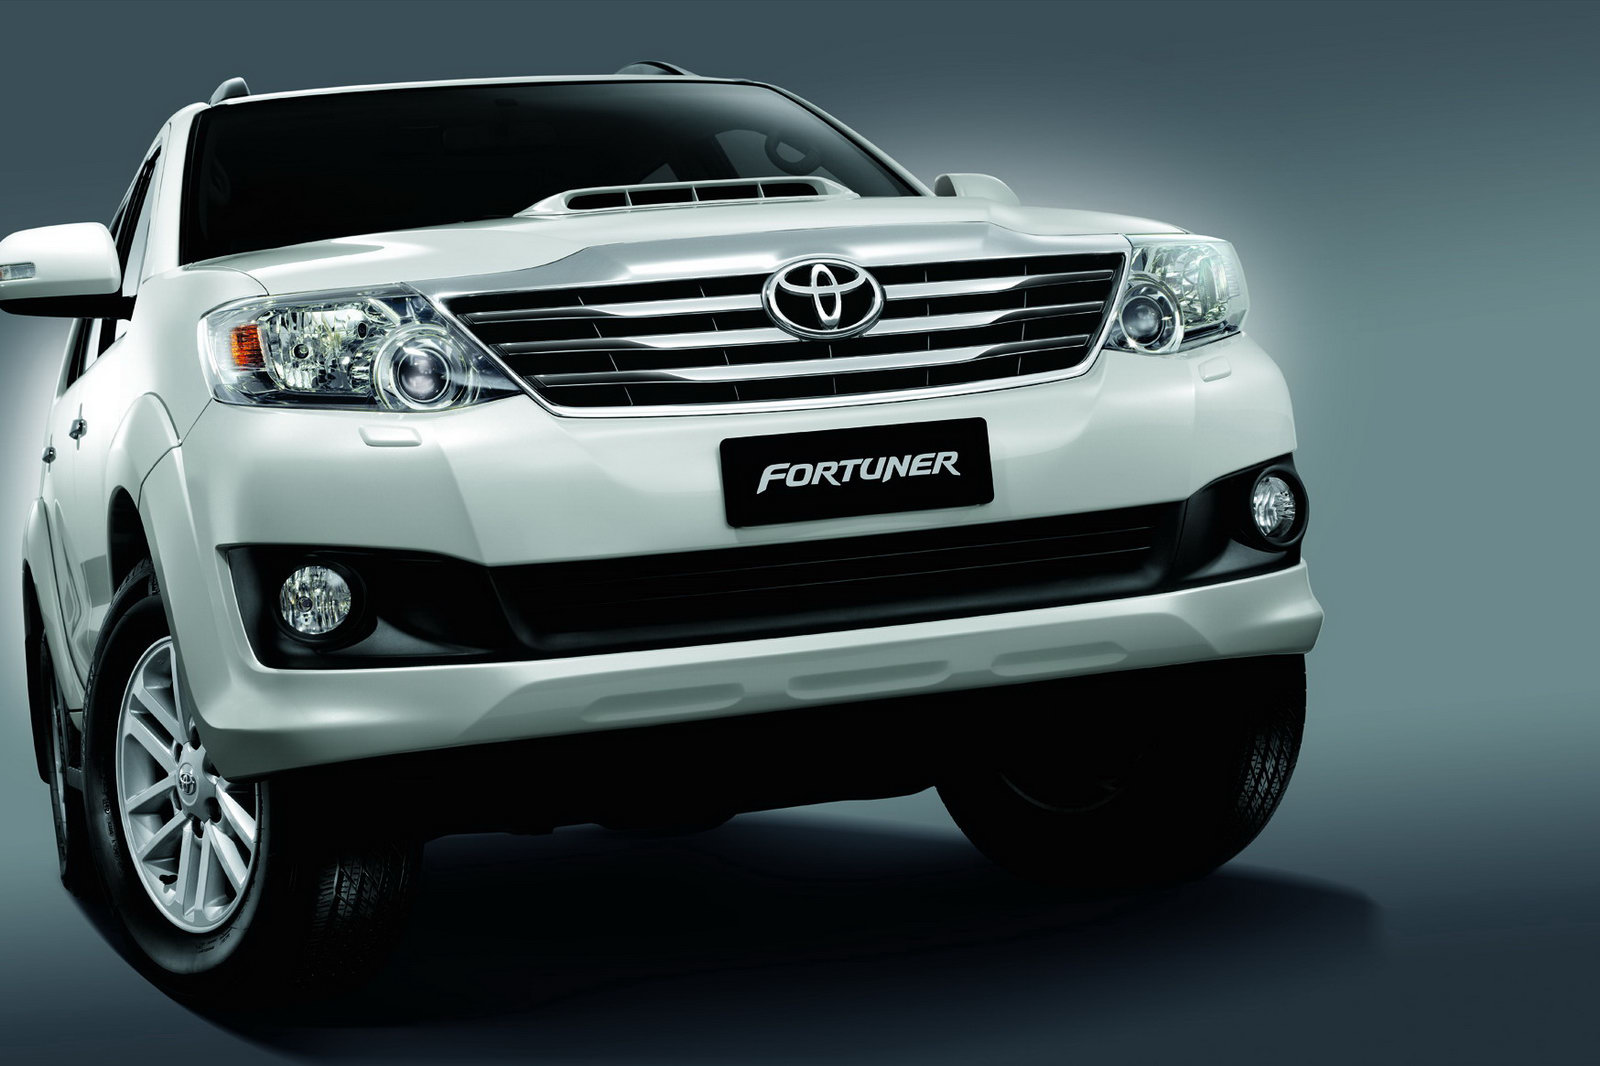 2012 Toyota Fortuner 4 Toyota unveils the 2012 Fortuner Asian Model